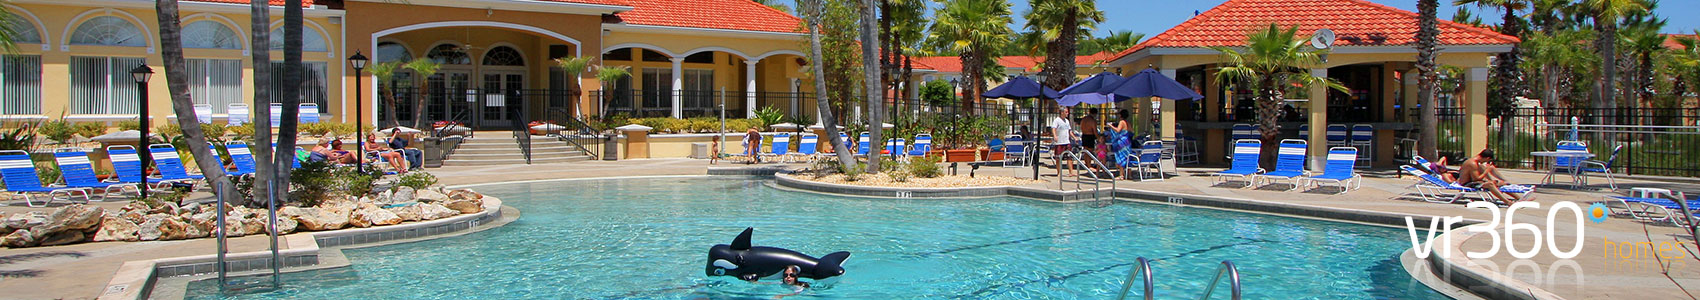 Terra Verde Resort Villas in Orlando, Florida